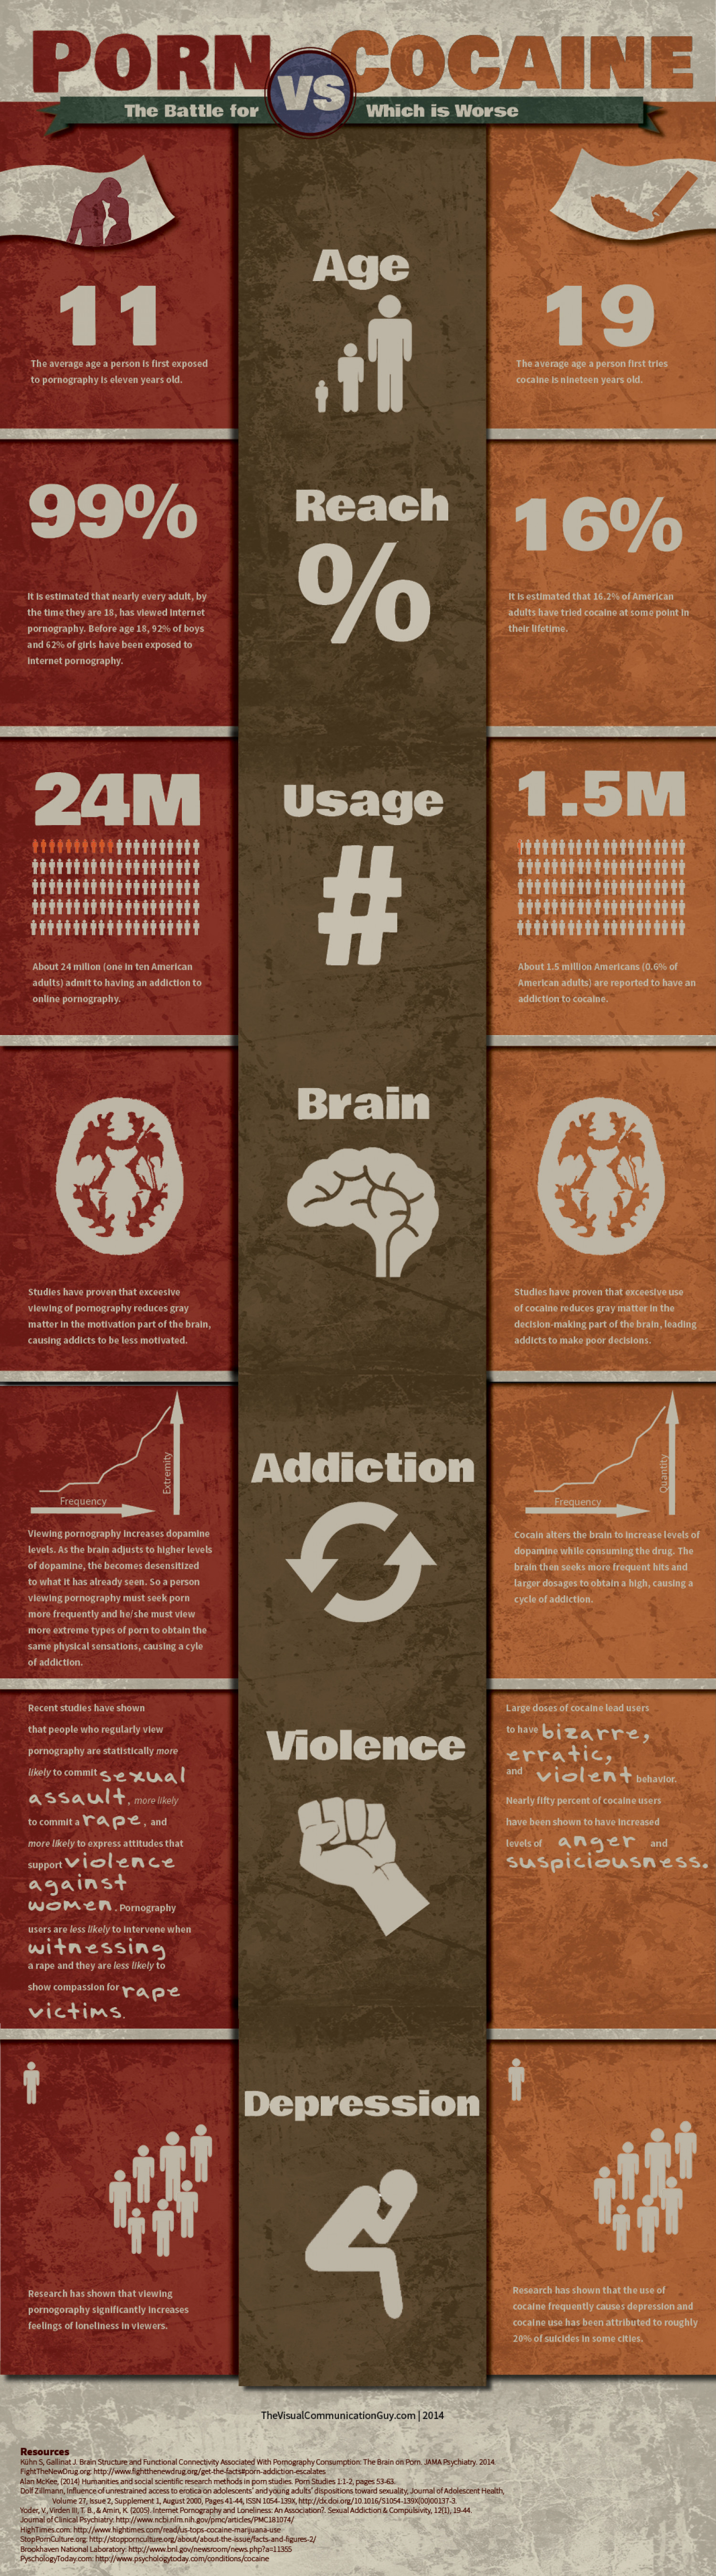 Porn vs. Cocaine: Which is Worse? Infographic